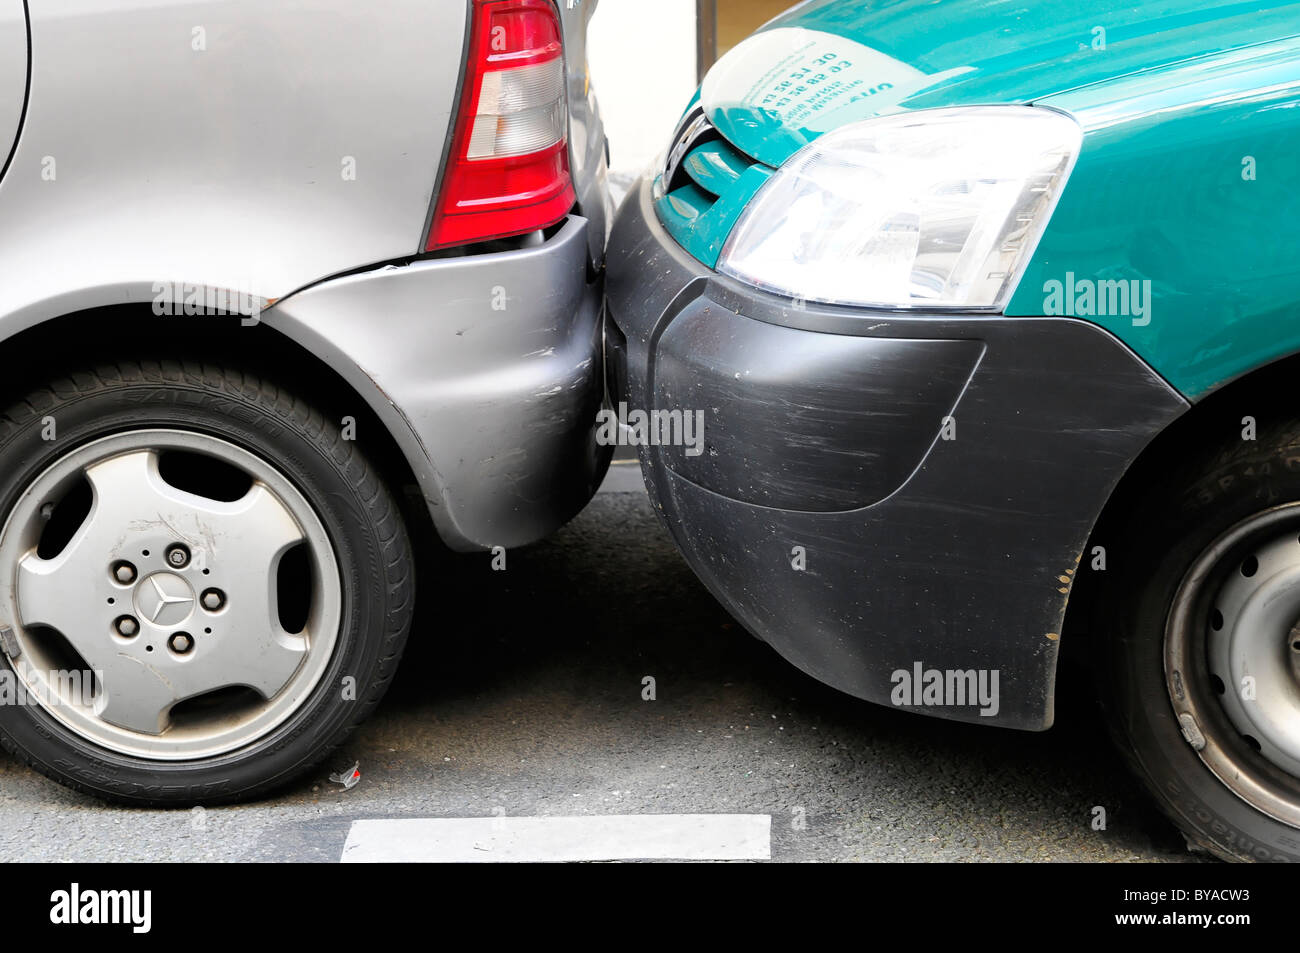 Accurate, difficult parking, Paris, France, Europe - Stock Image